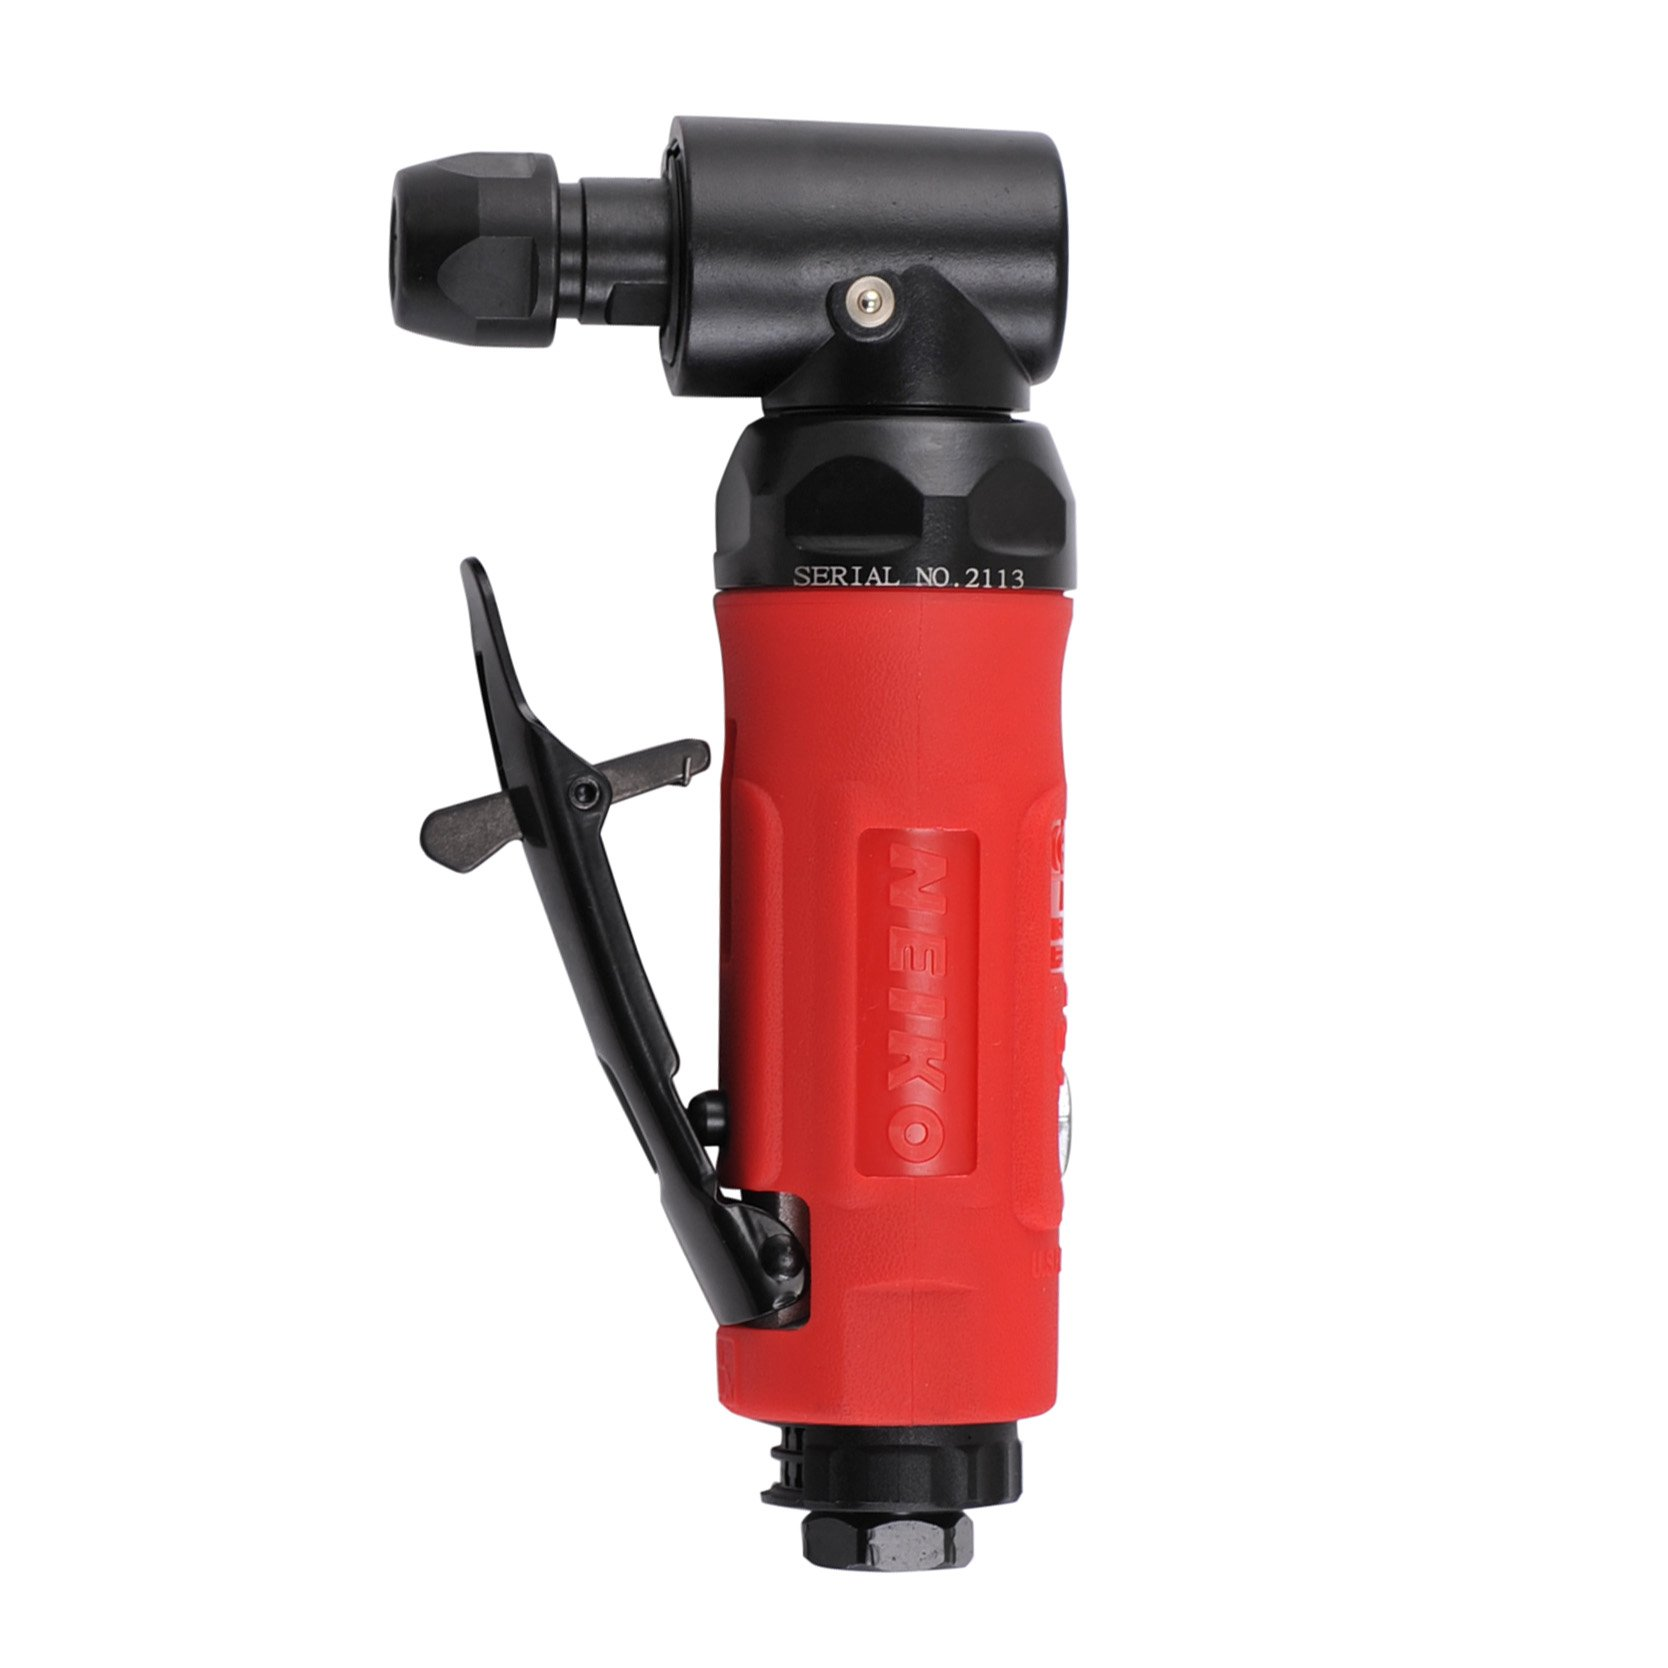 Neiko 30109B Mini Angle Die Grinder Rear Exhaust, 90 Degree | 1/4'' Collet | Self Locking Safety Lever | 90 PSI, 20000 RPM